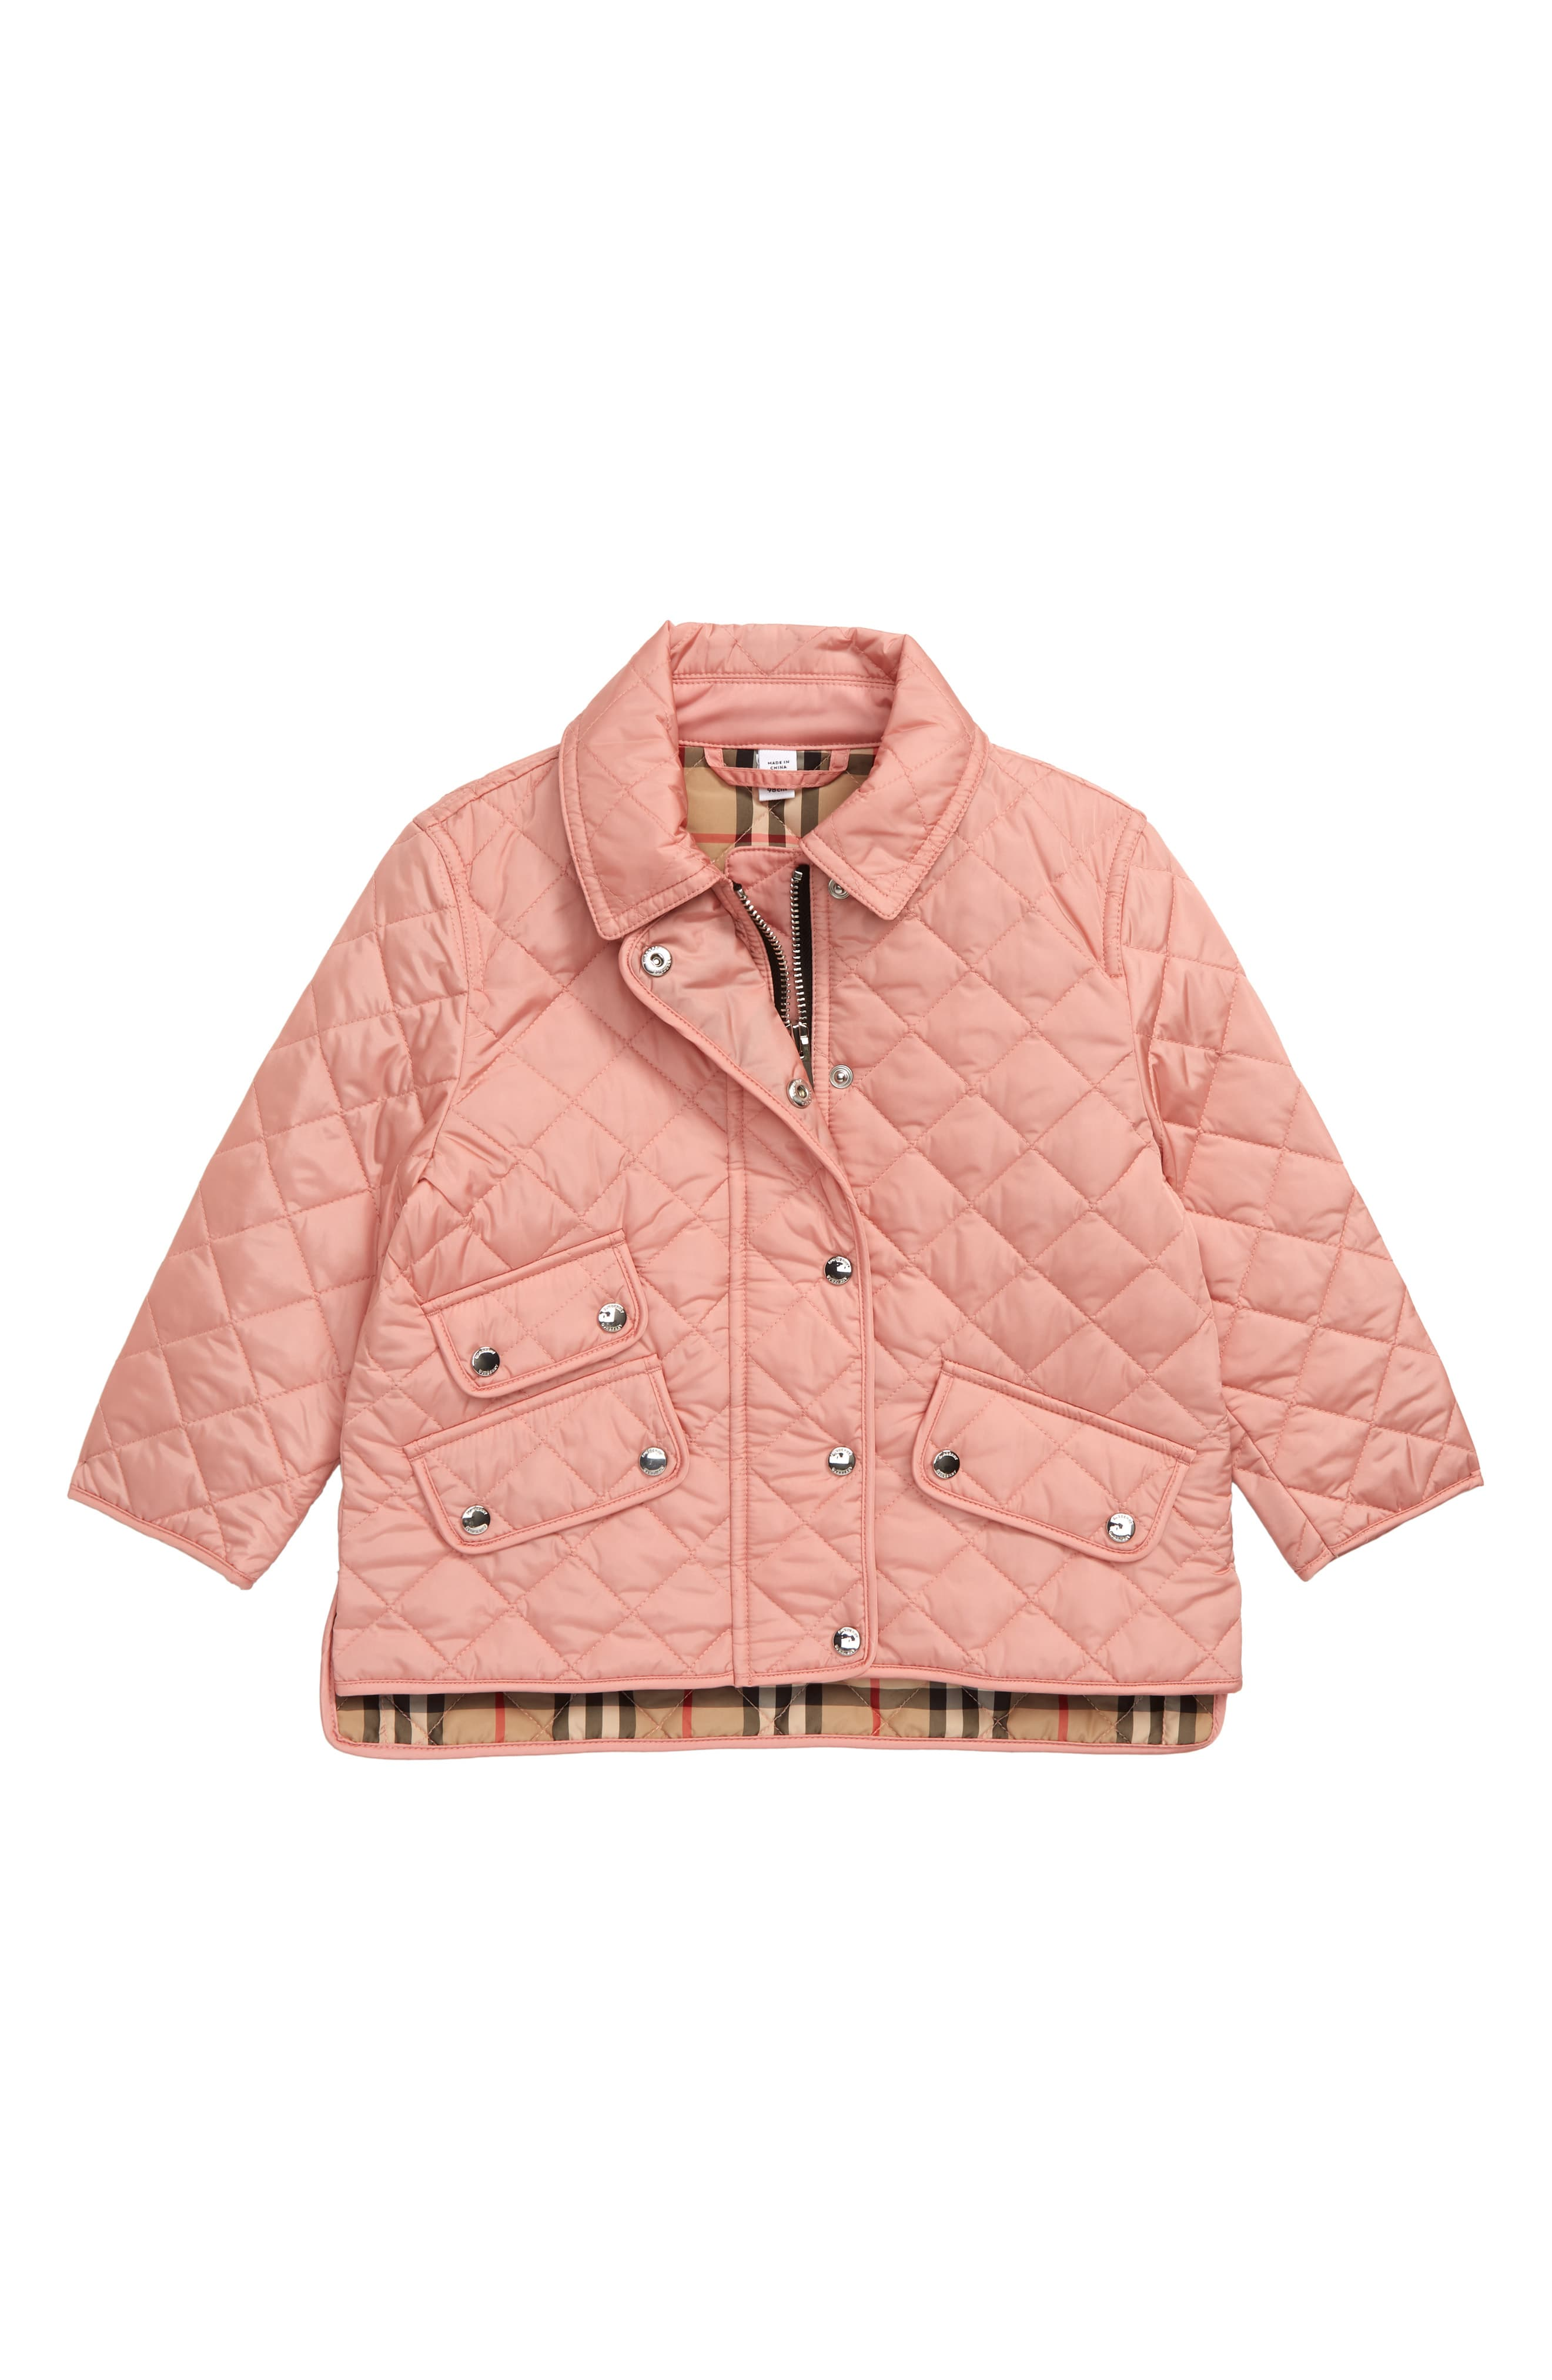 Burberry Brennan Water Resistant Diamond Quilted Jacket Toddler Girl Little Girl Big Girl Quilted Jacket Diamond Quilt Jackets